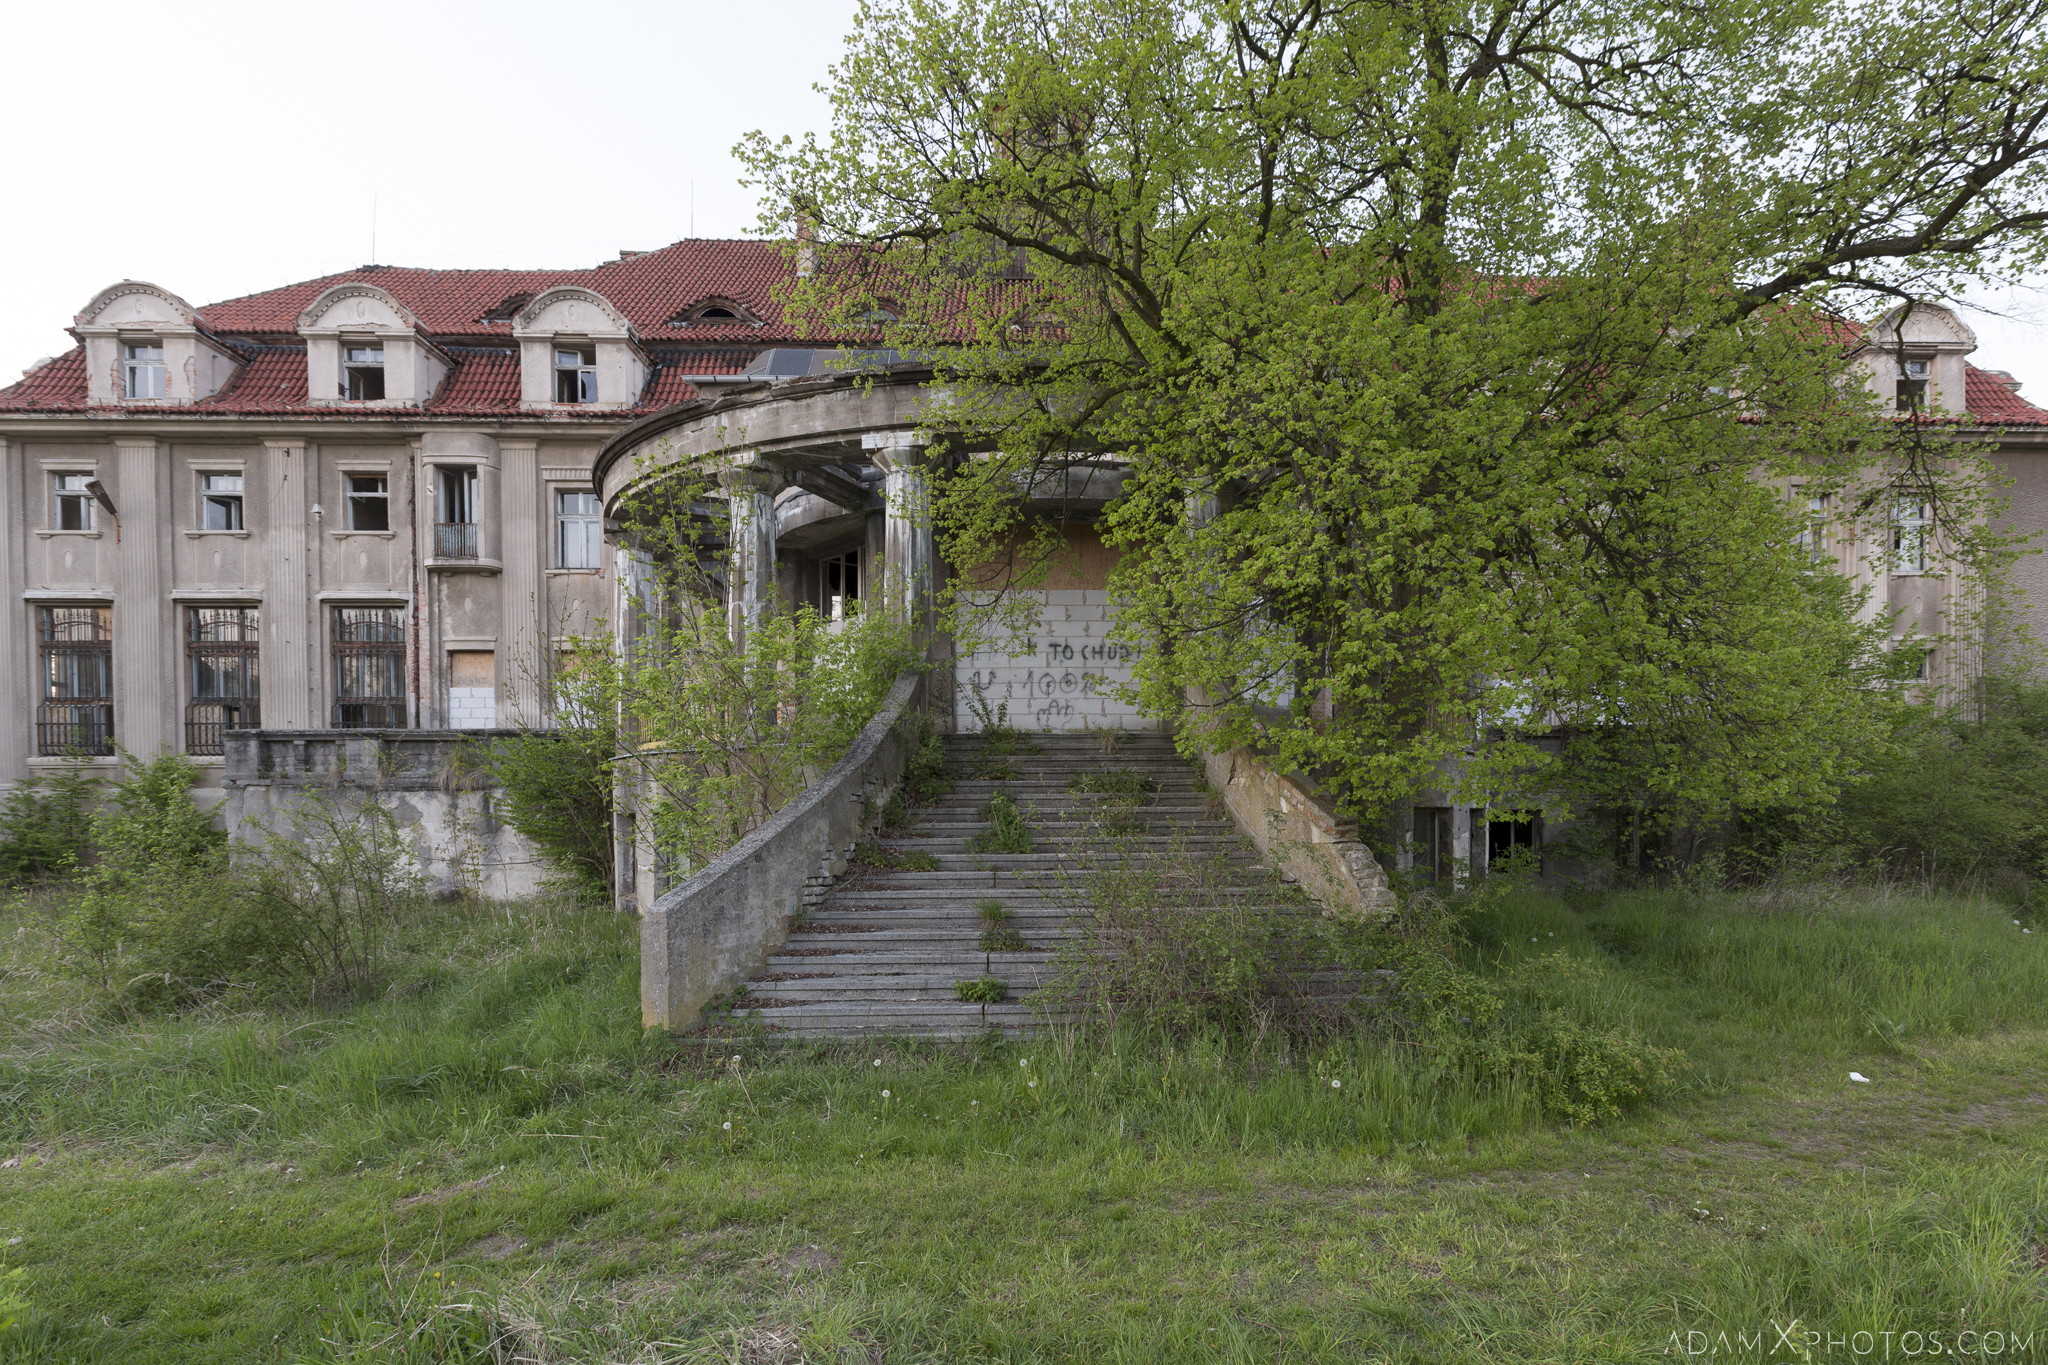 External exterior outside back rear Main hall twin split stairs staircase Great Belcz Palace Pałac w Bełczu Wielkim Urbex Poland Adam X Urban Exploration Access 2016 Abandoned decay lost forgotten derelict location haunting eerie